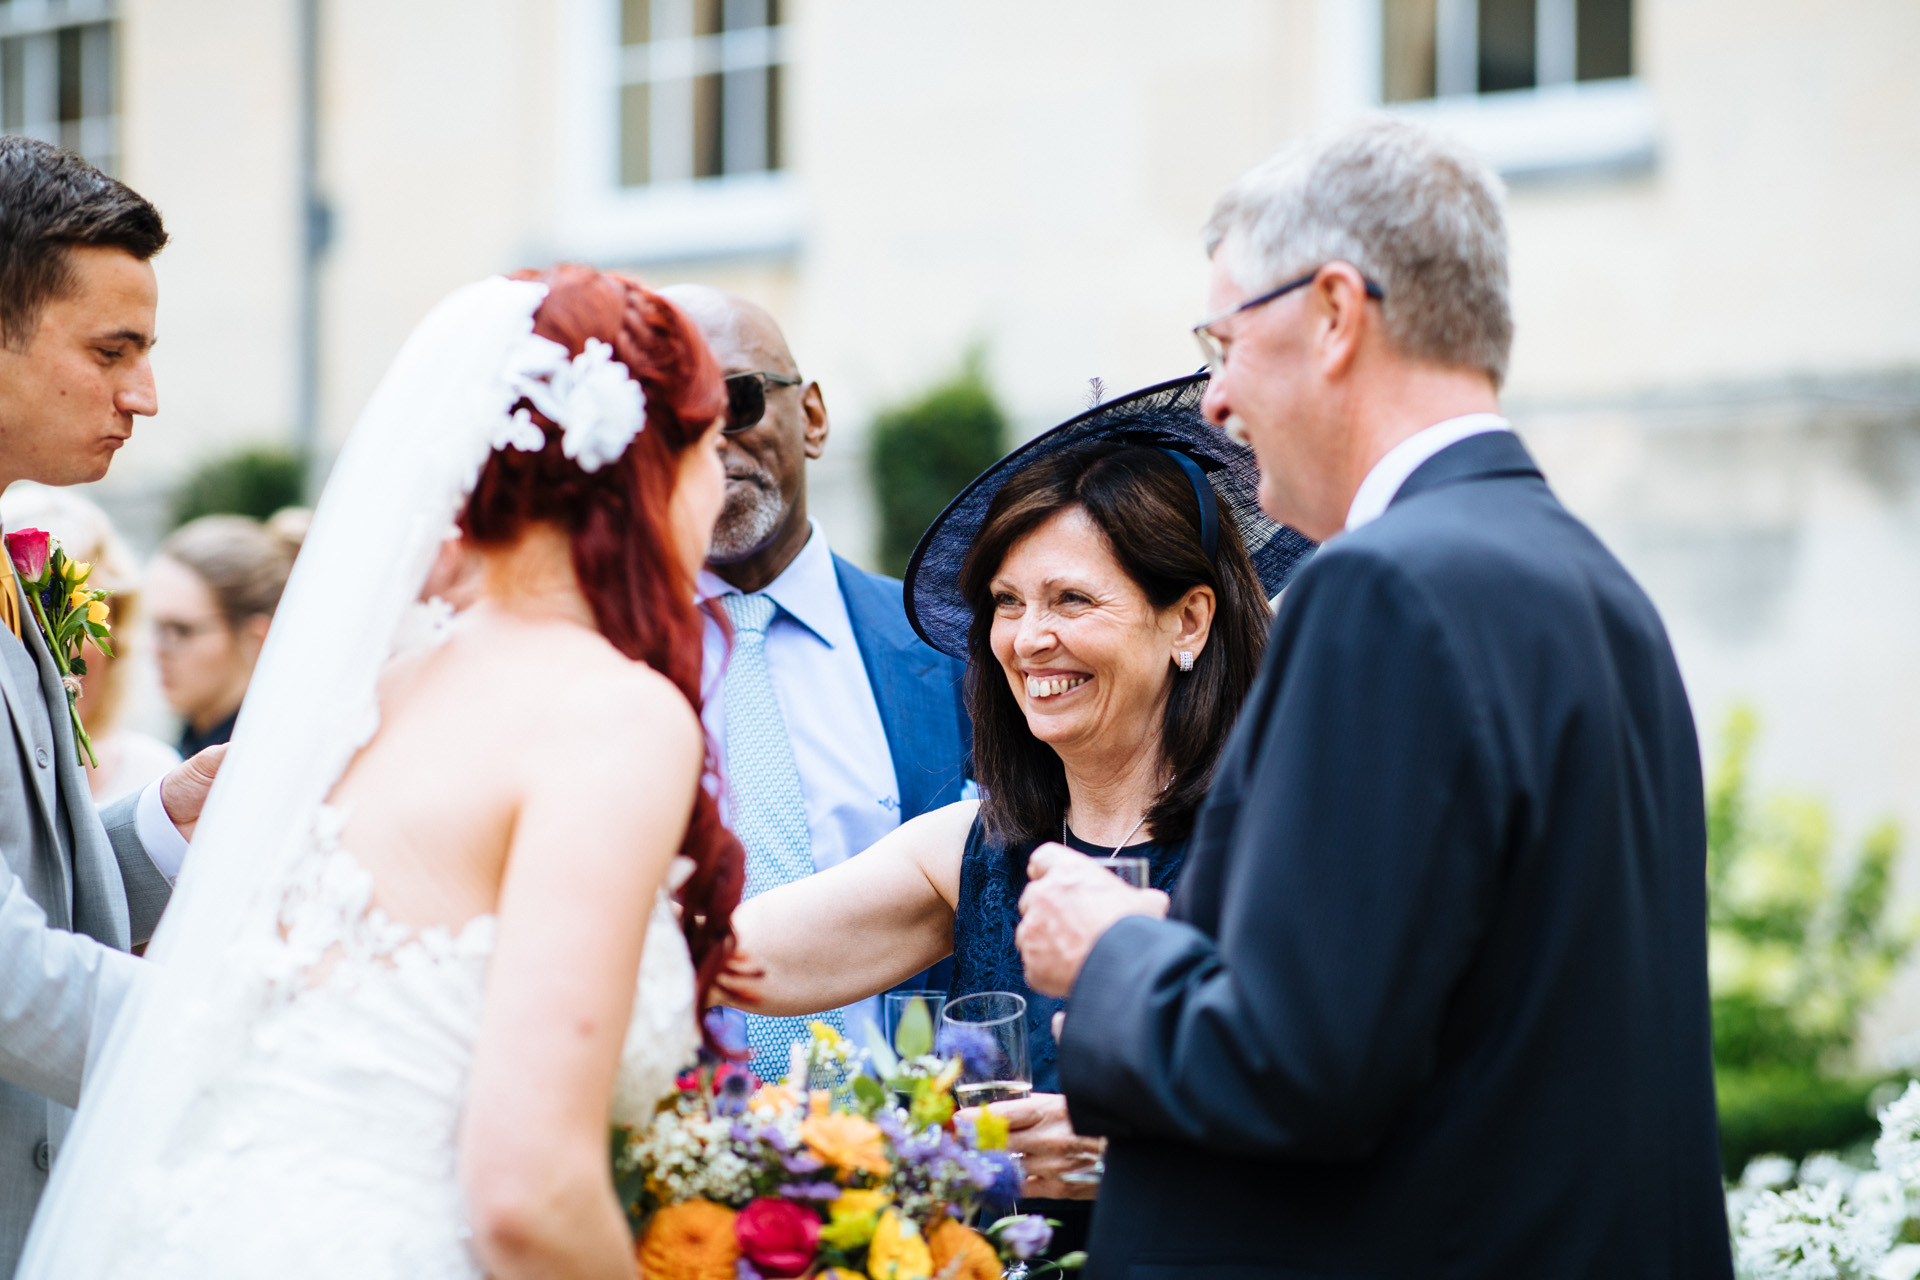 female wedding guest with navy dress and hat smiling at the bride